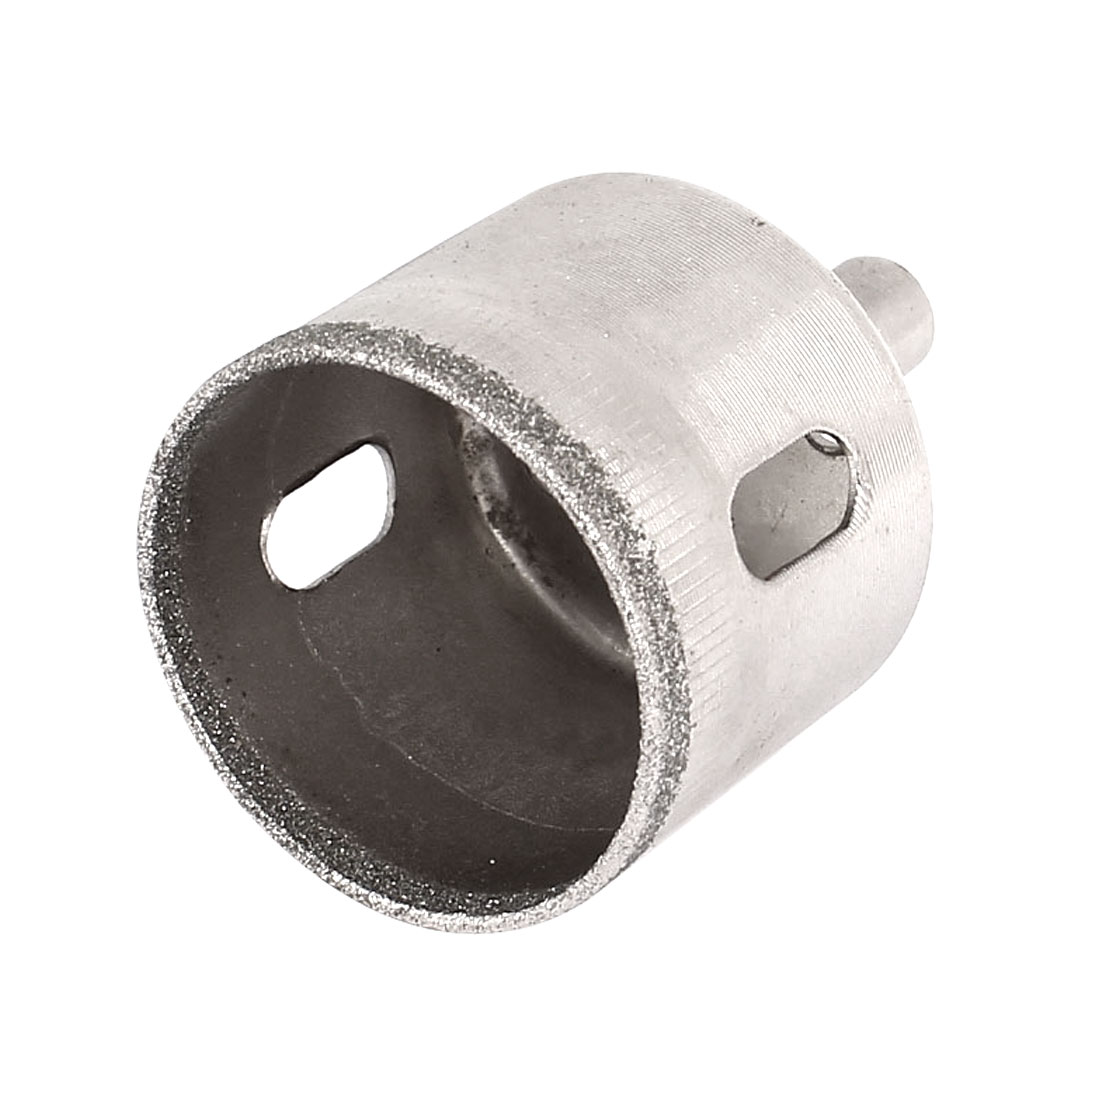 35mm Cutting Dia Diamond Coated Hole Saw Tool for Glass Tile